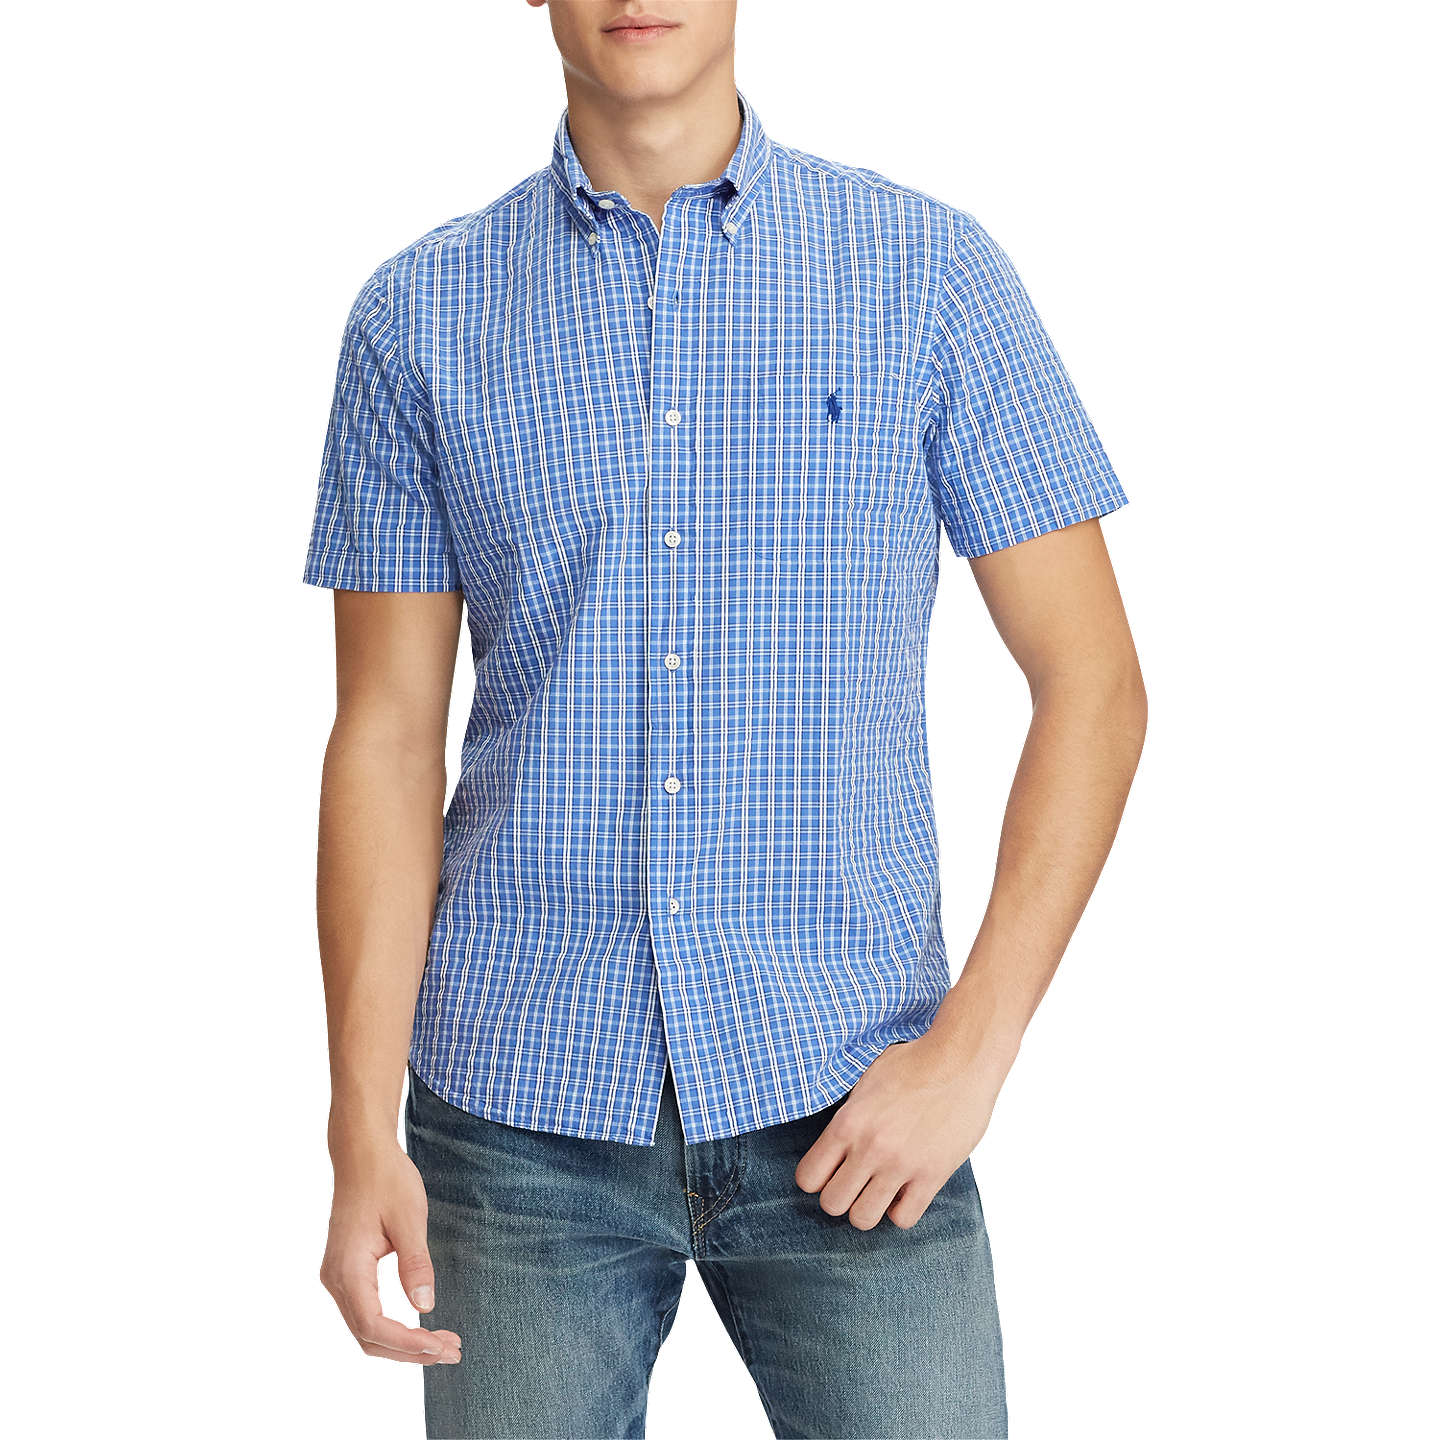 BuyPolo Ralph Lauren Seersucker Short Sleeve Check Shirt, Blue/Navy, S  Online at ...